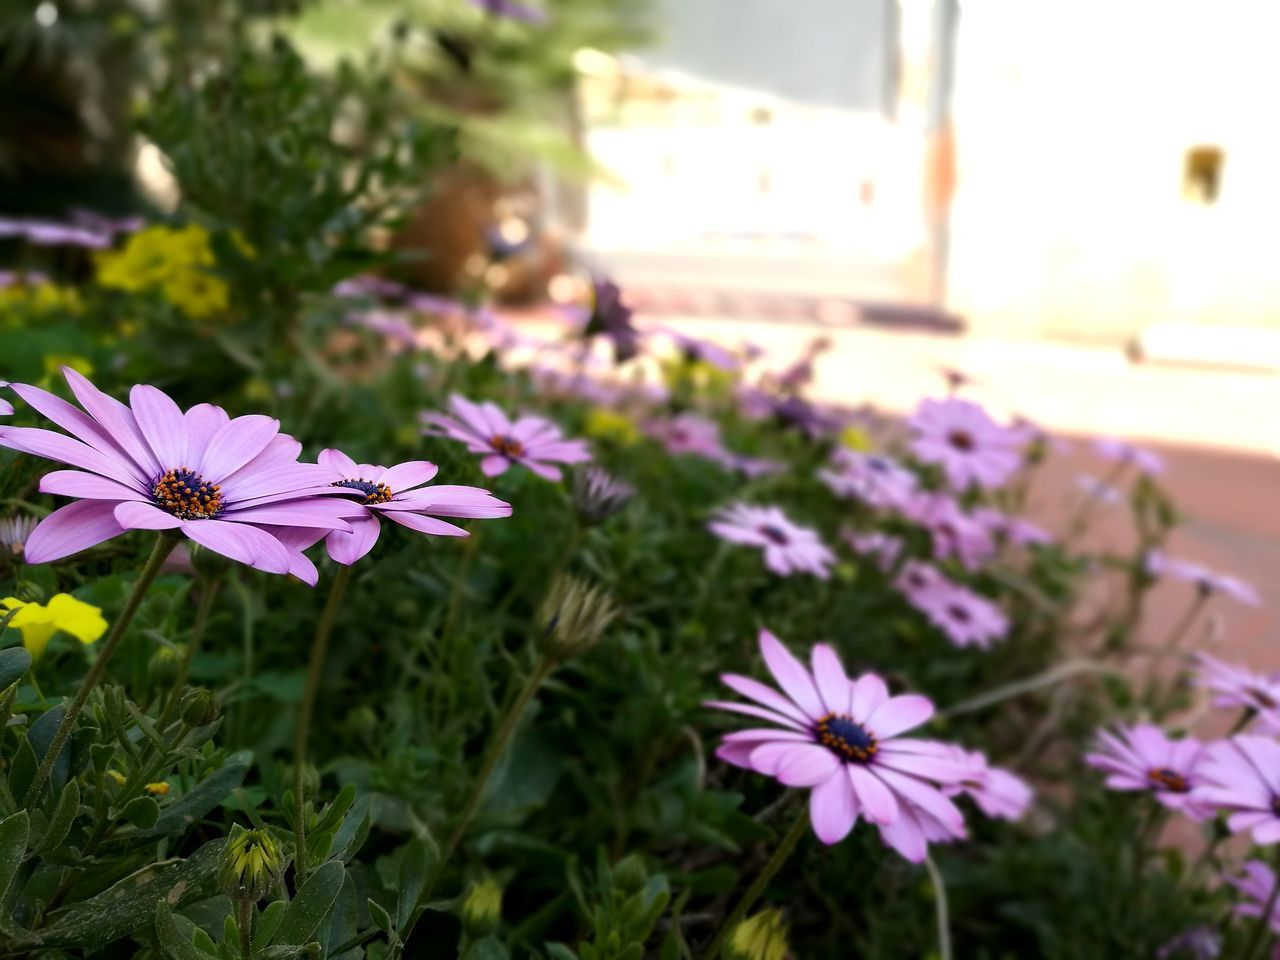 flower, fragility, petal, purple, growth, beauty in nature, freshness, nature, flower head, focus on foreground, plant, blooming, day, close-up, no people, pink color, outdoors, cosmos flower, osteospermum, crocus, petunia